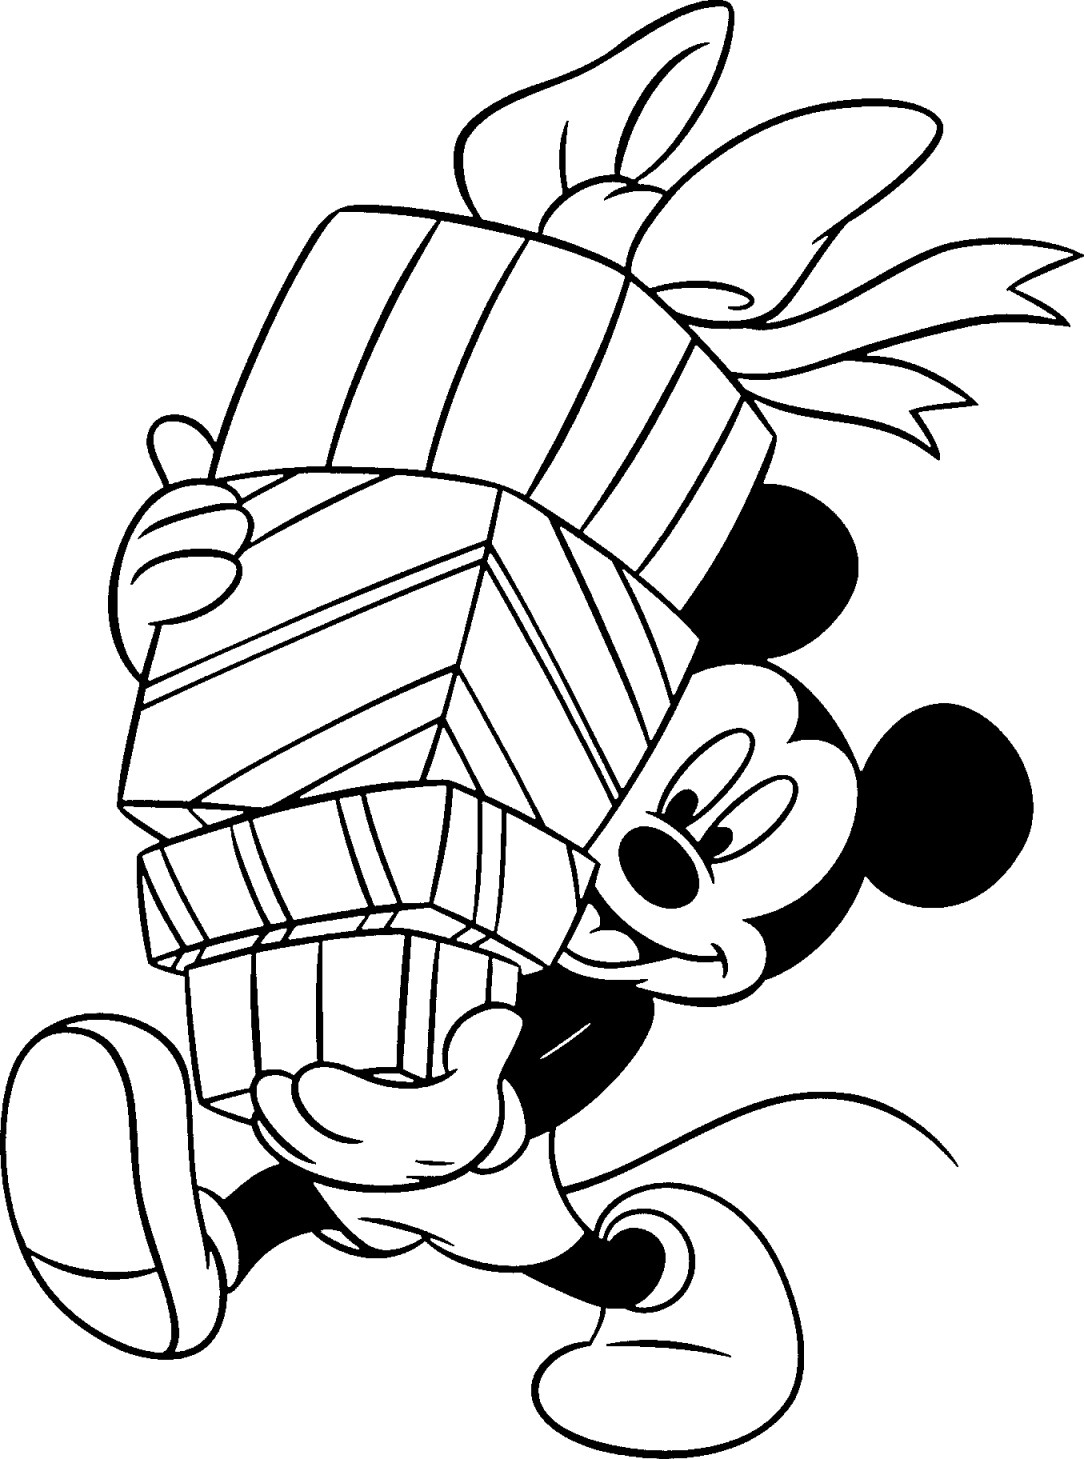 coloring pictures mickey mouse mickey mouse coloring pages 6 disney coloring book mouse mickey coloring pictures